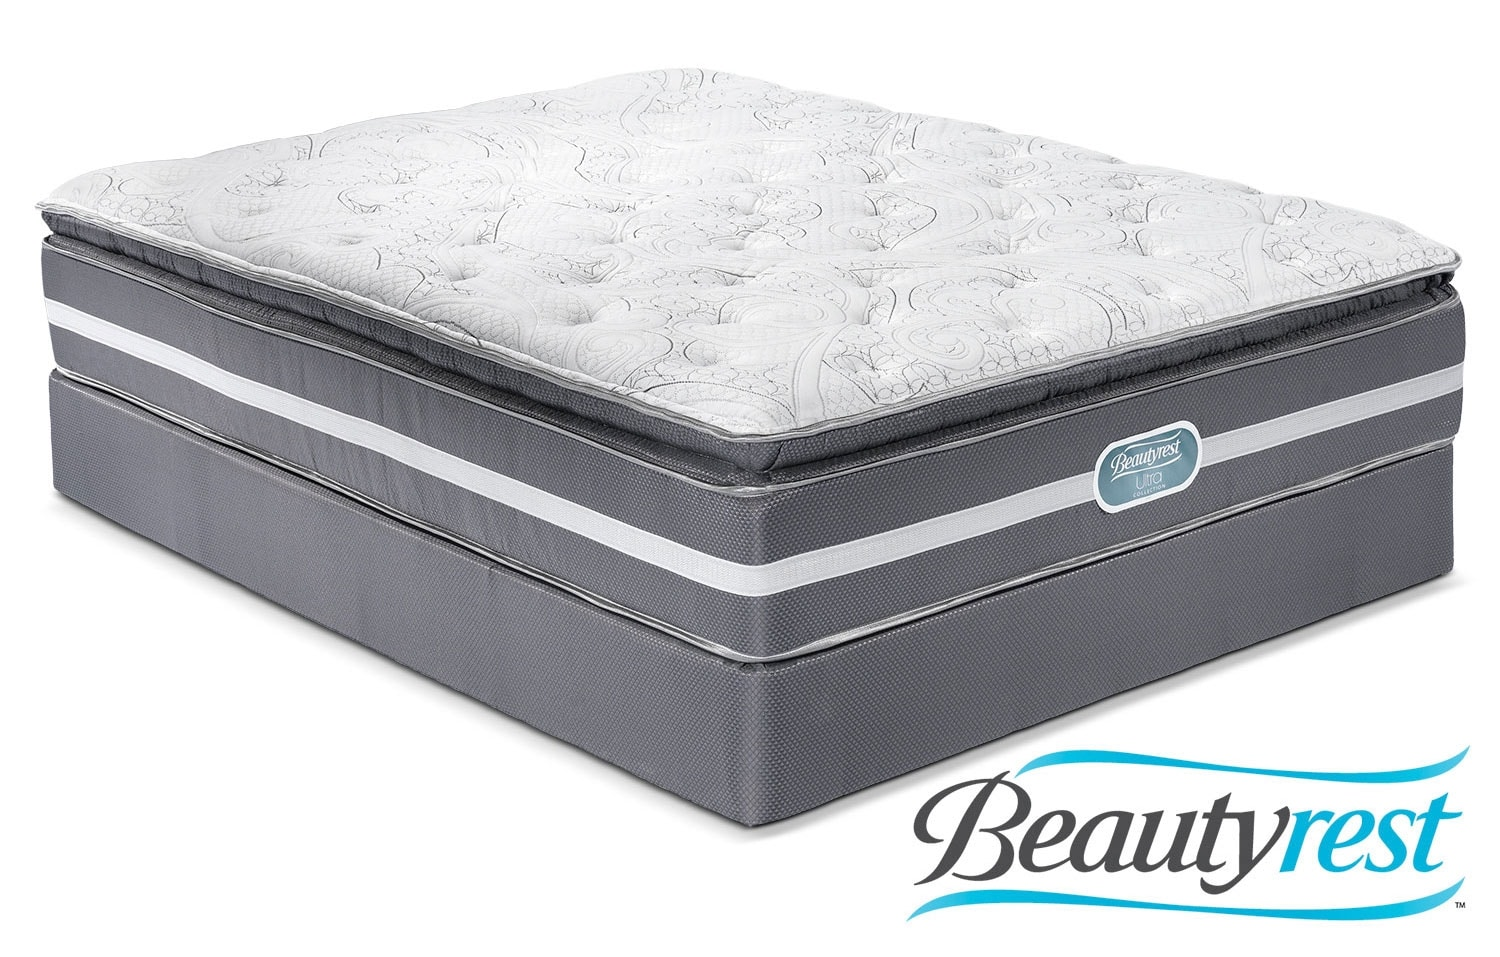 Mattresses and Bedding - Simmons Paradise Firm Queen Mattress/Boxspring Set